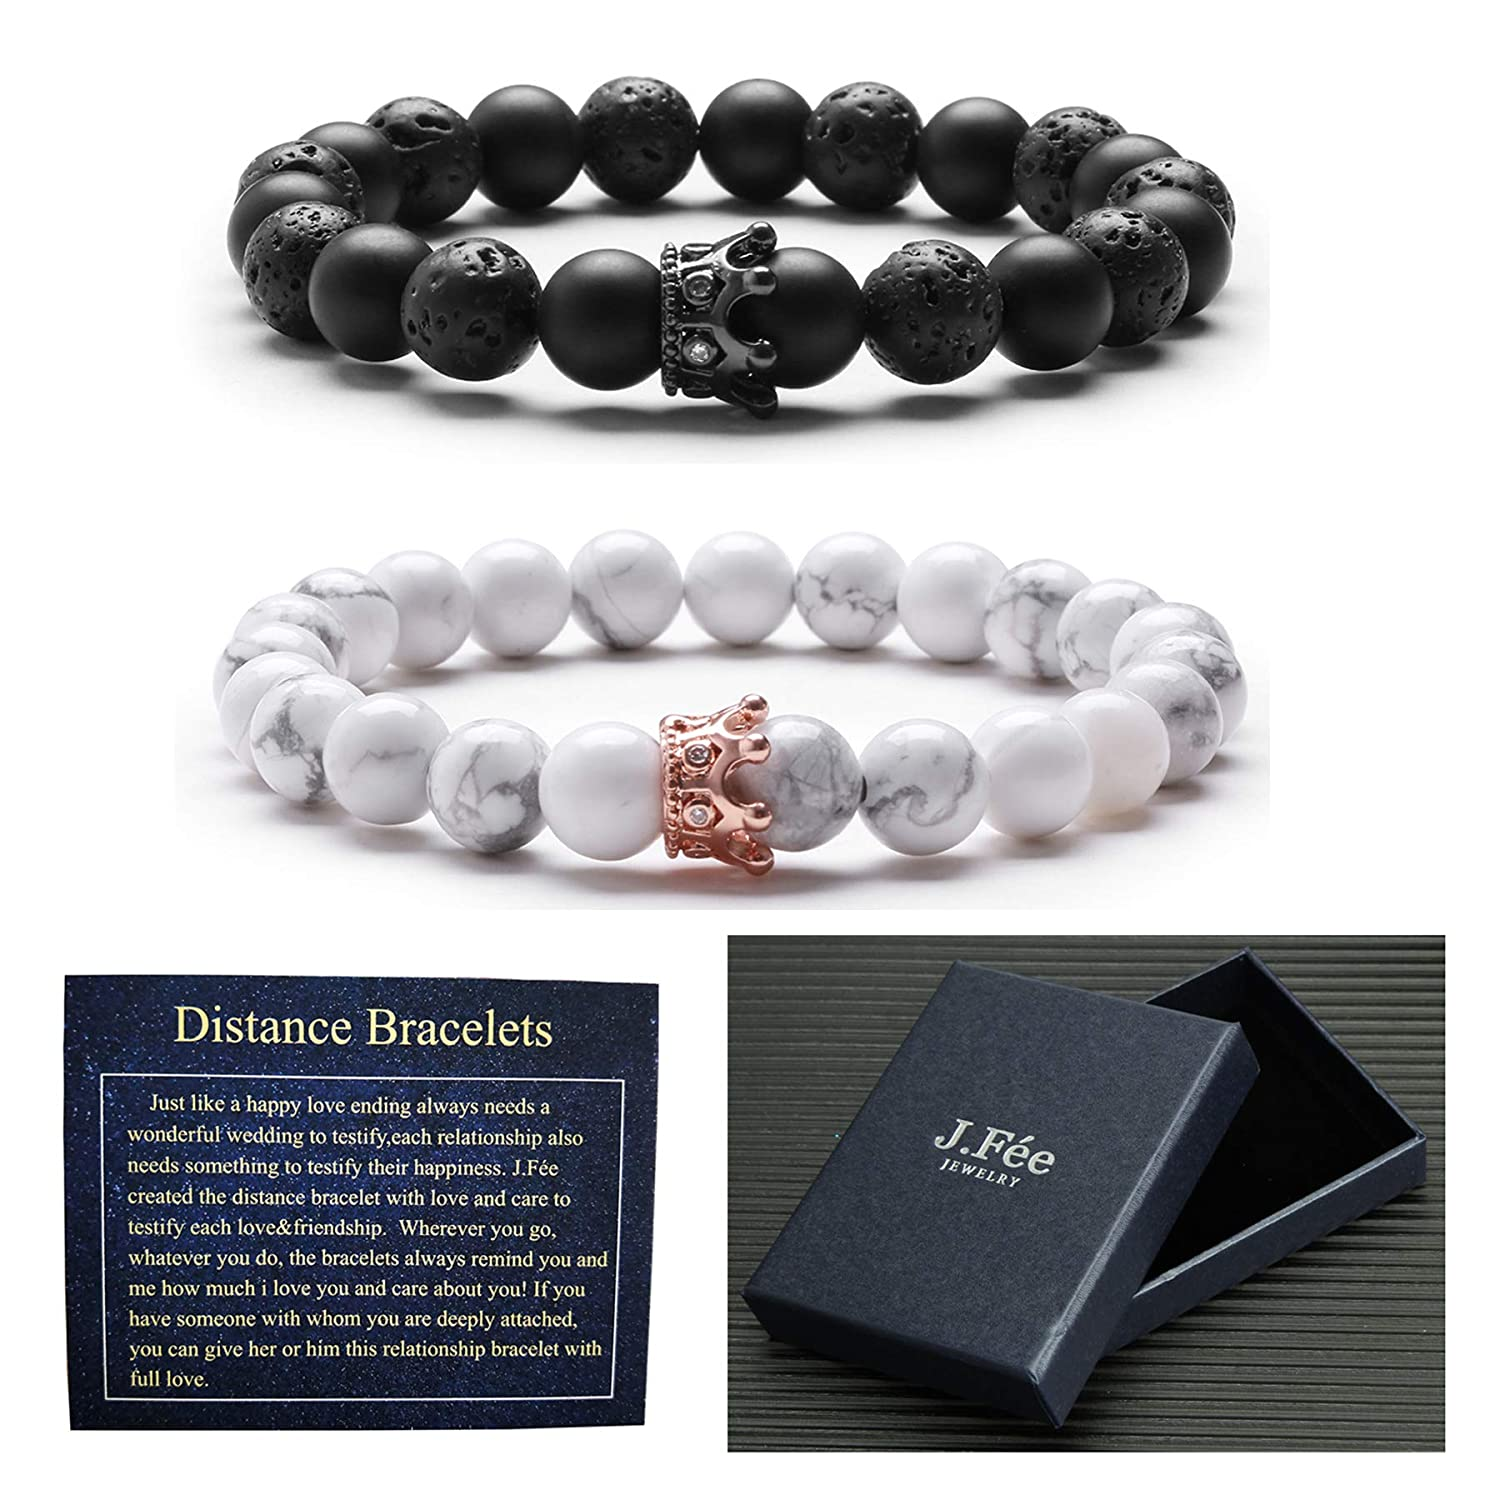 J.Fée Distance Bracelet CZ Crown Queen Friendship Relationship Couples His-and-Hers Bracelet Matte Black Onyx White Howlite J.Fée FINE JEWELLERY